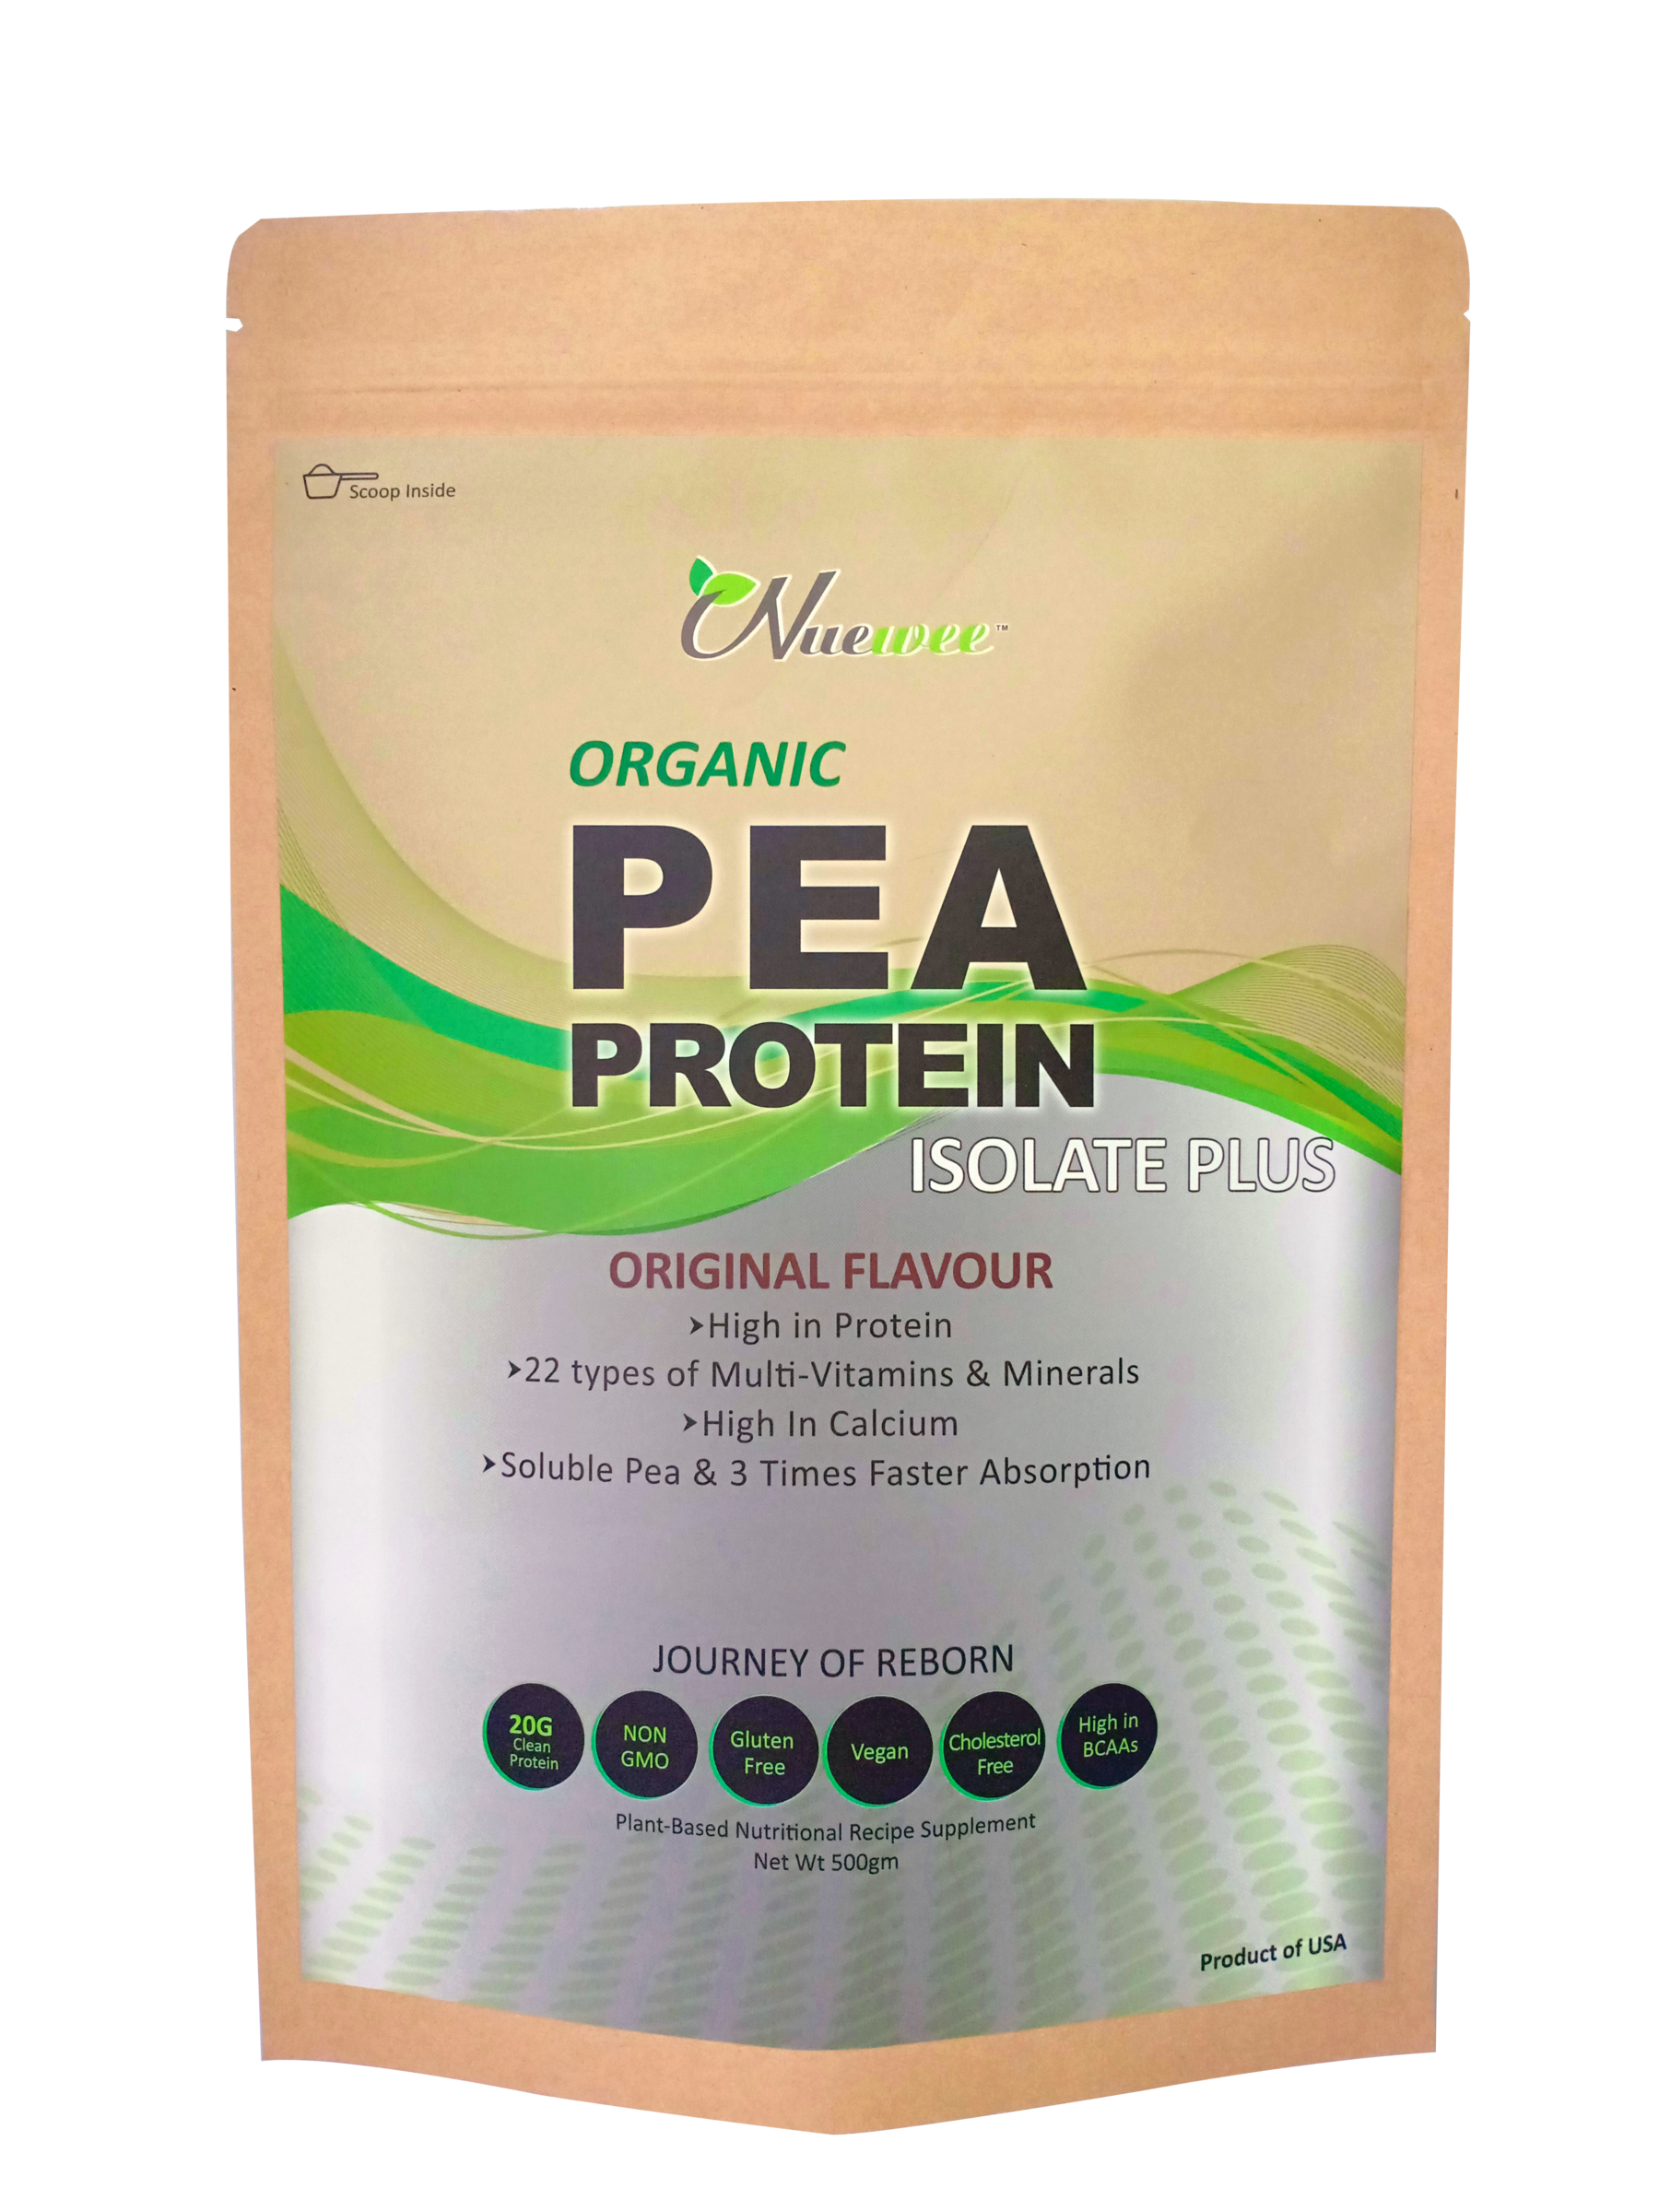 Nuewee-Organic-Pea-Protein-Isolate-Plus-Product-Picture-Front.png